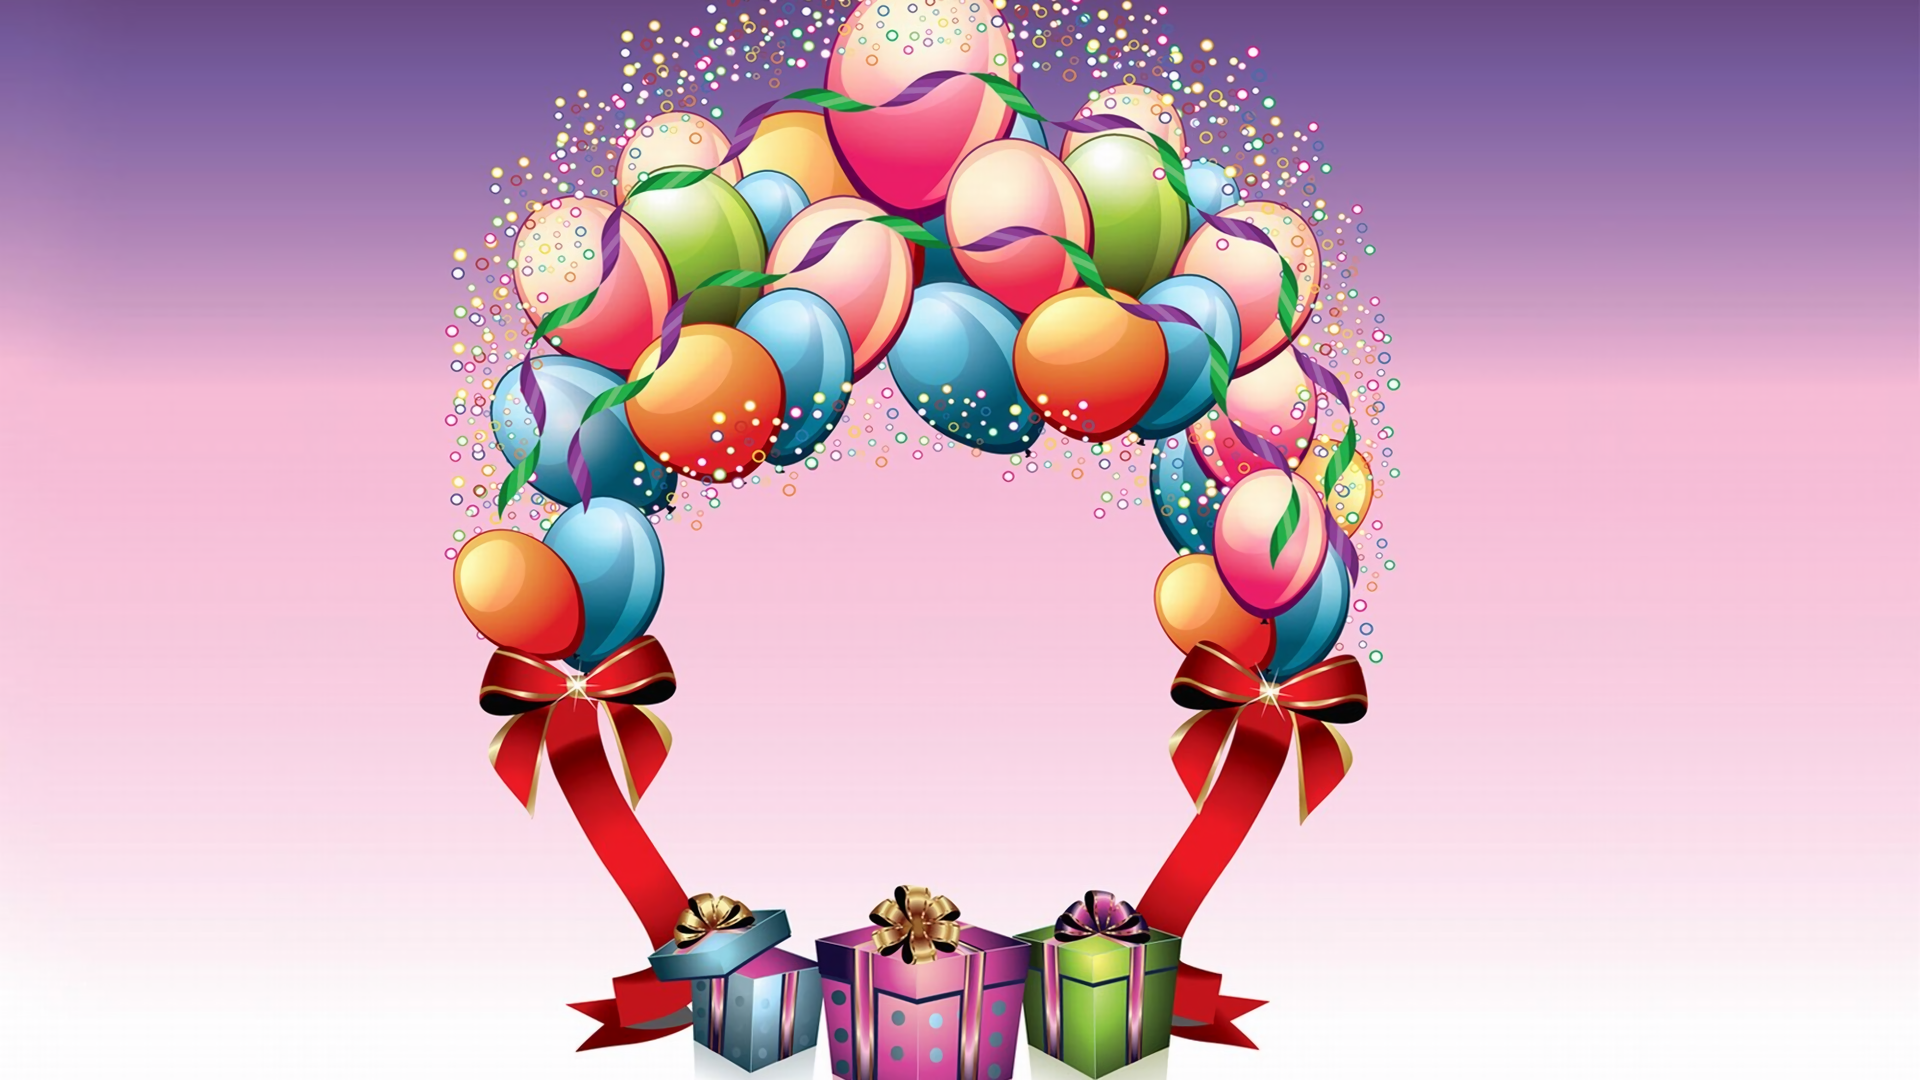 Birthday Balloons And Gifts Hd Wallpaper Background Image